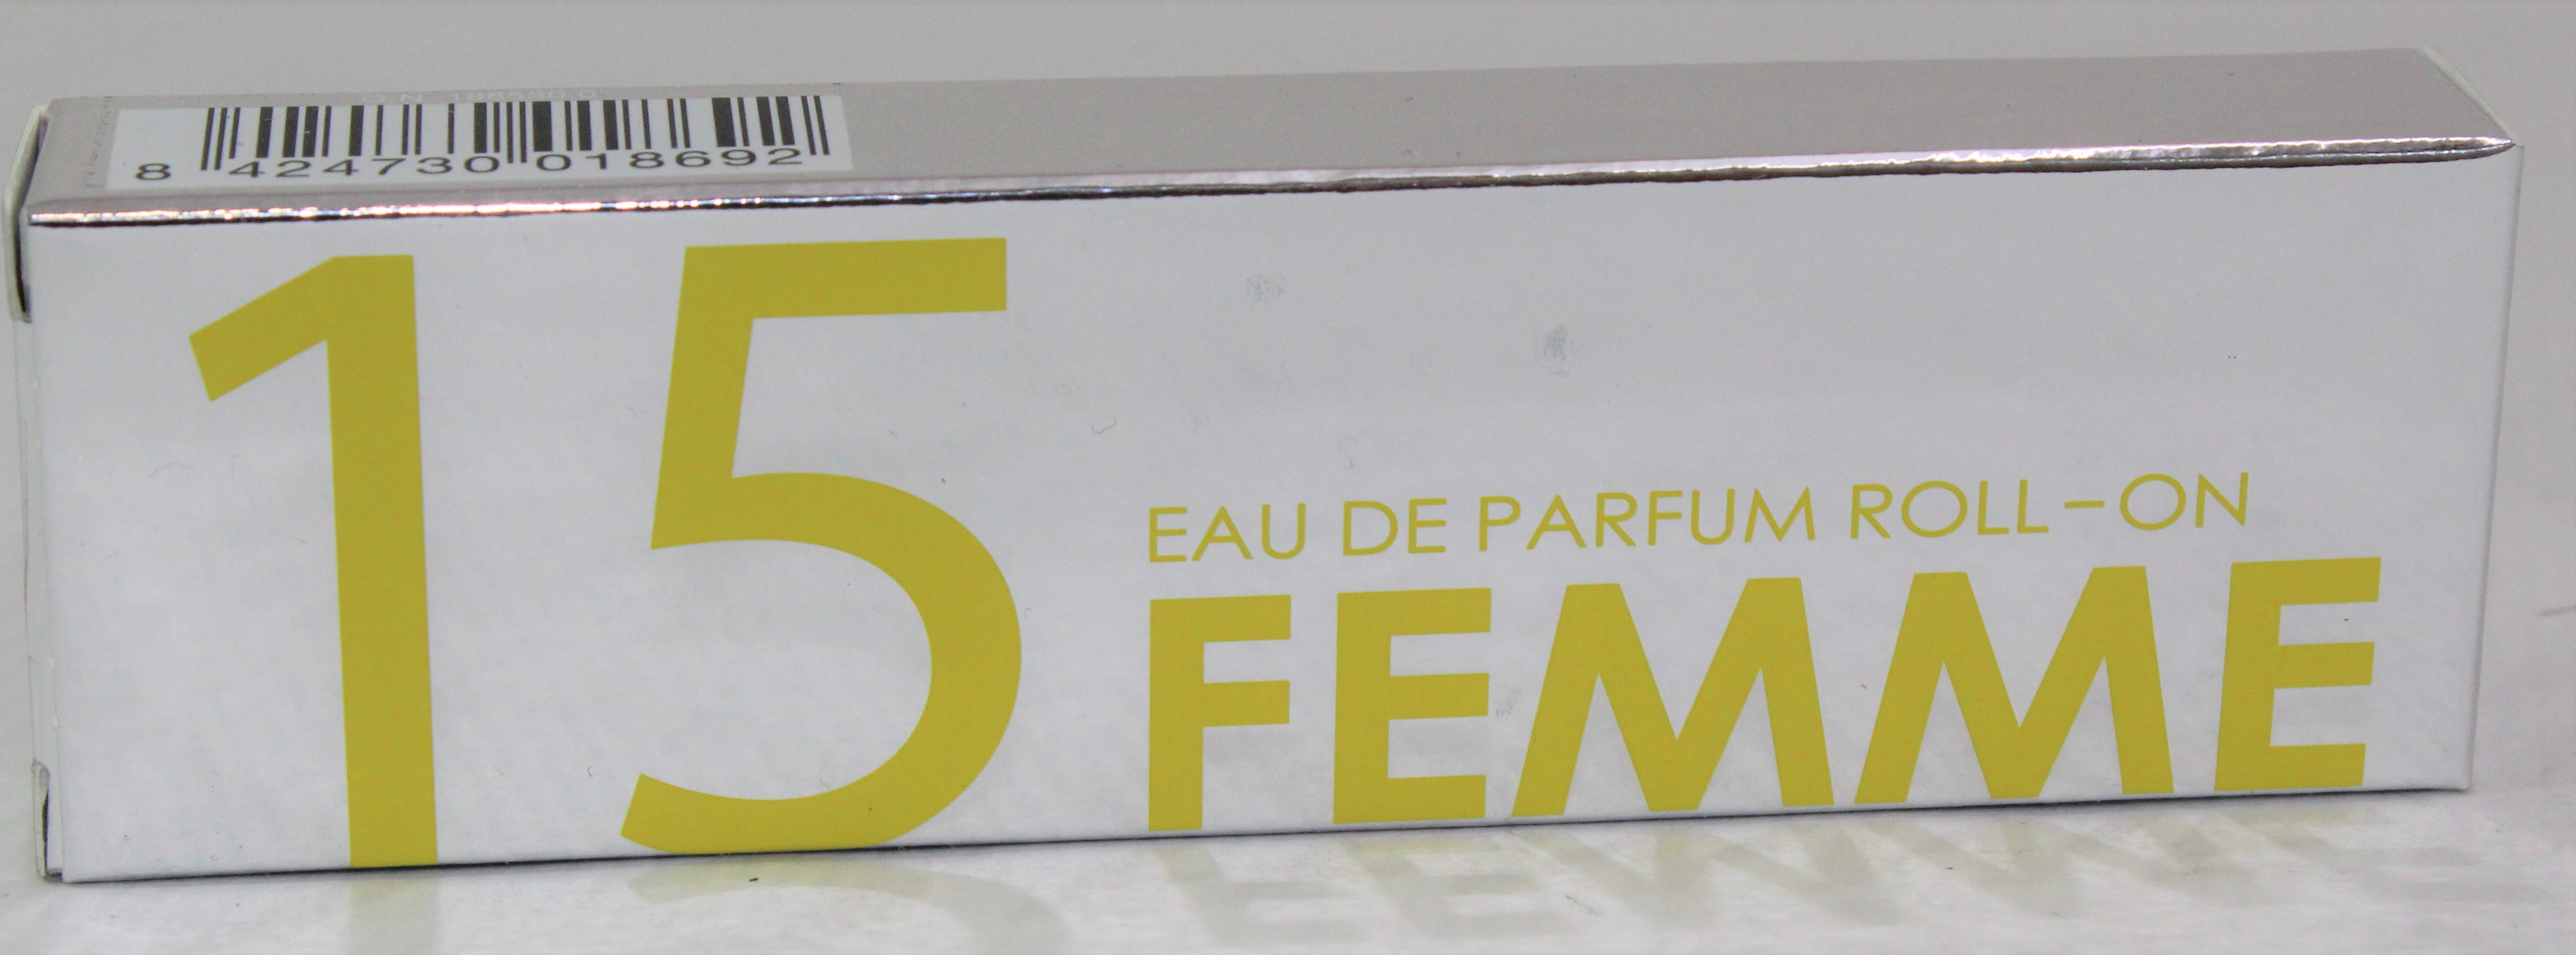 IAP PHARMA POUR FEMME N15 ROLL-ON 10 ML